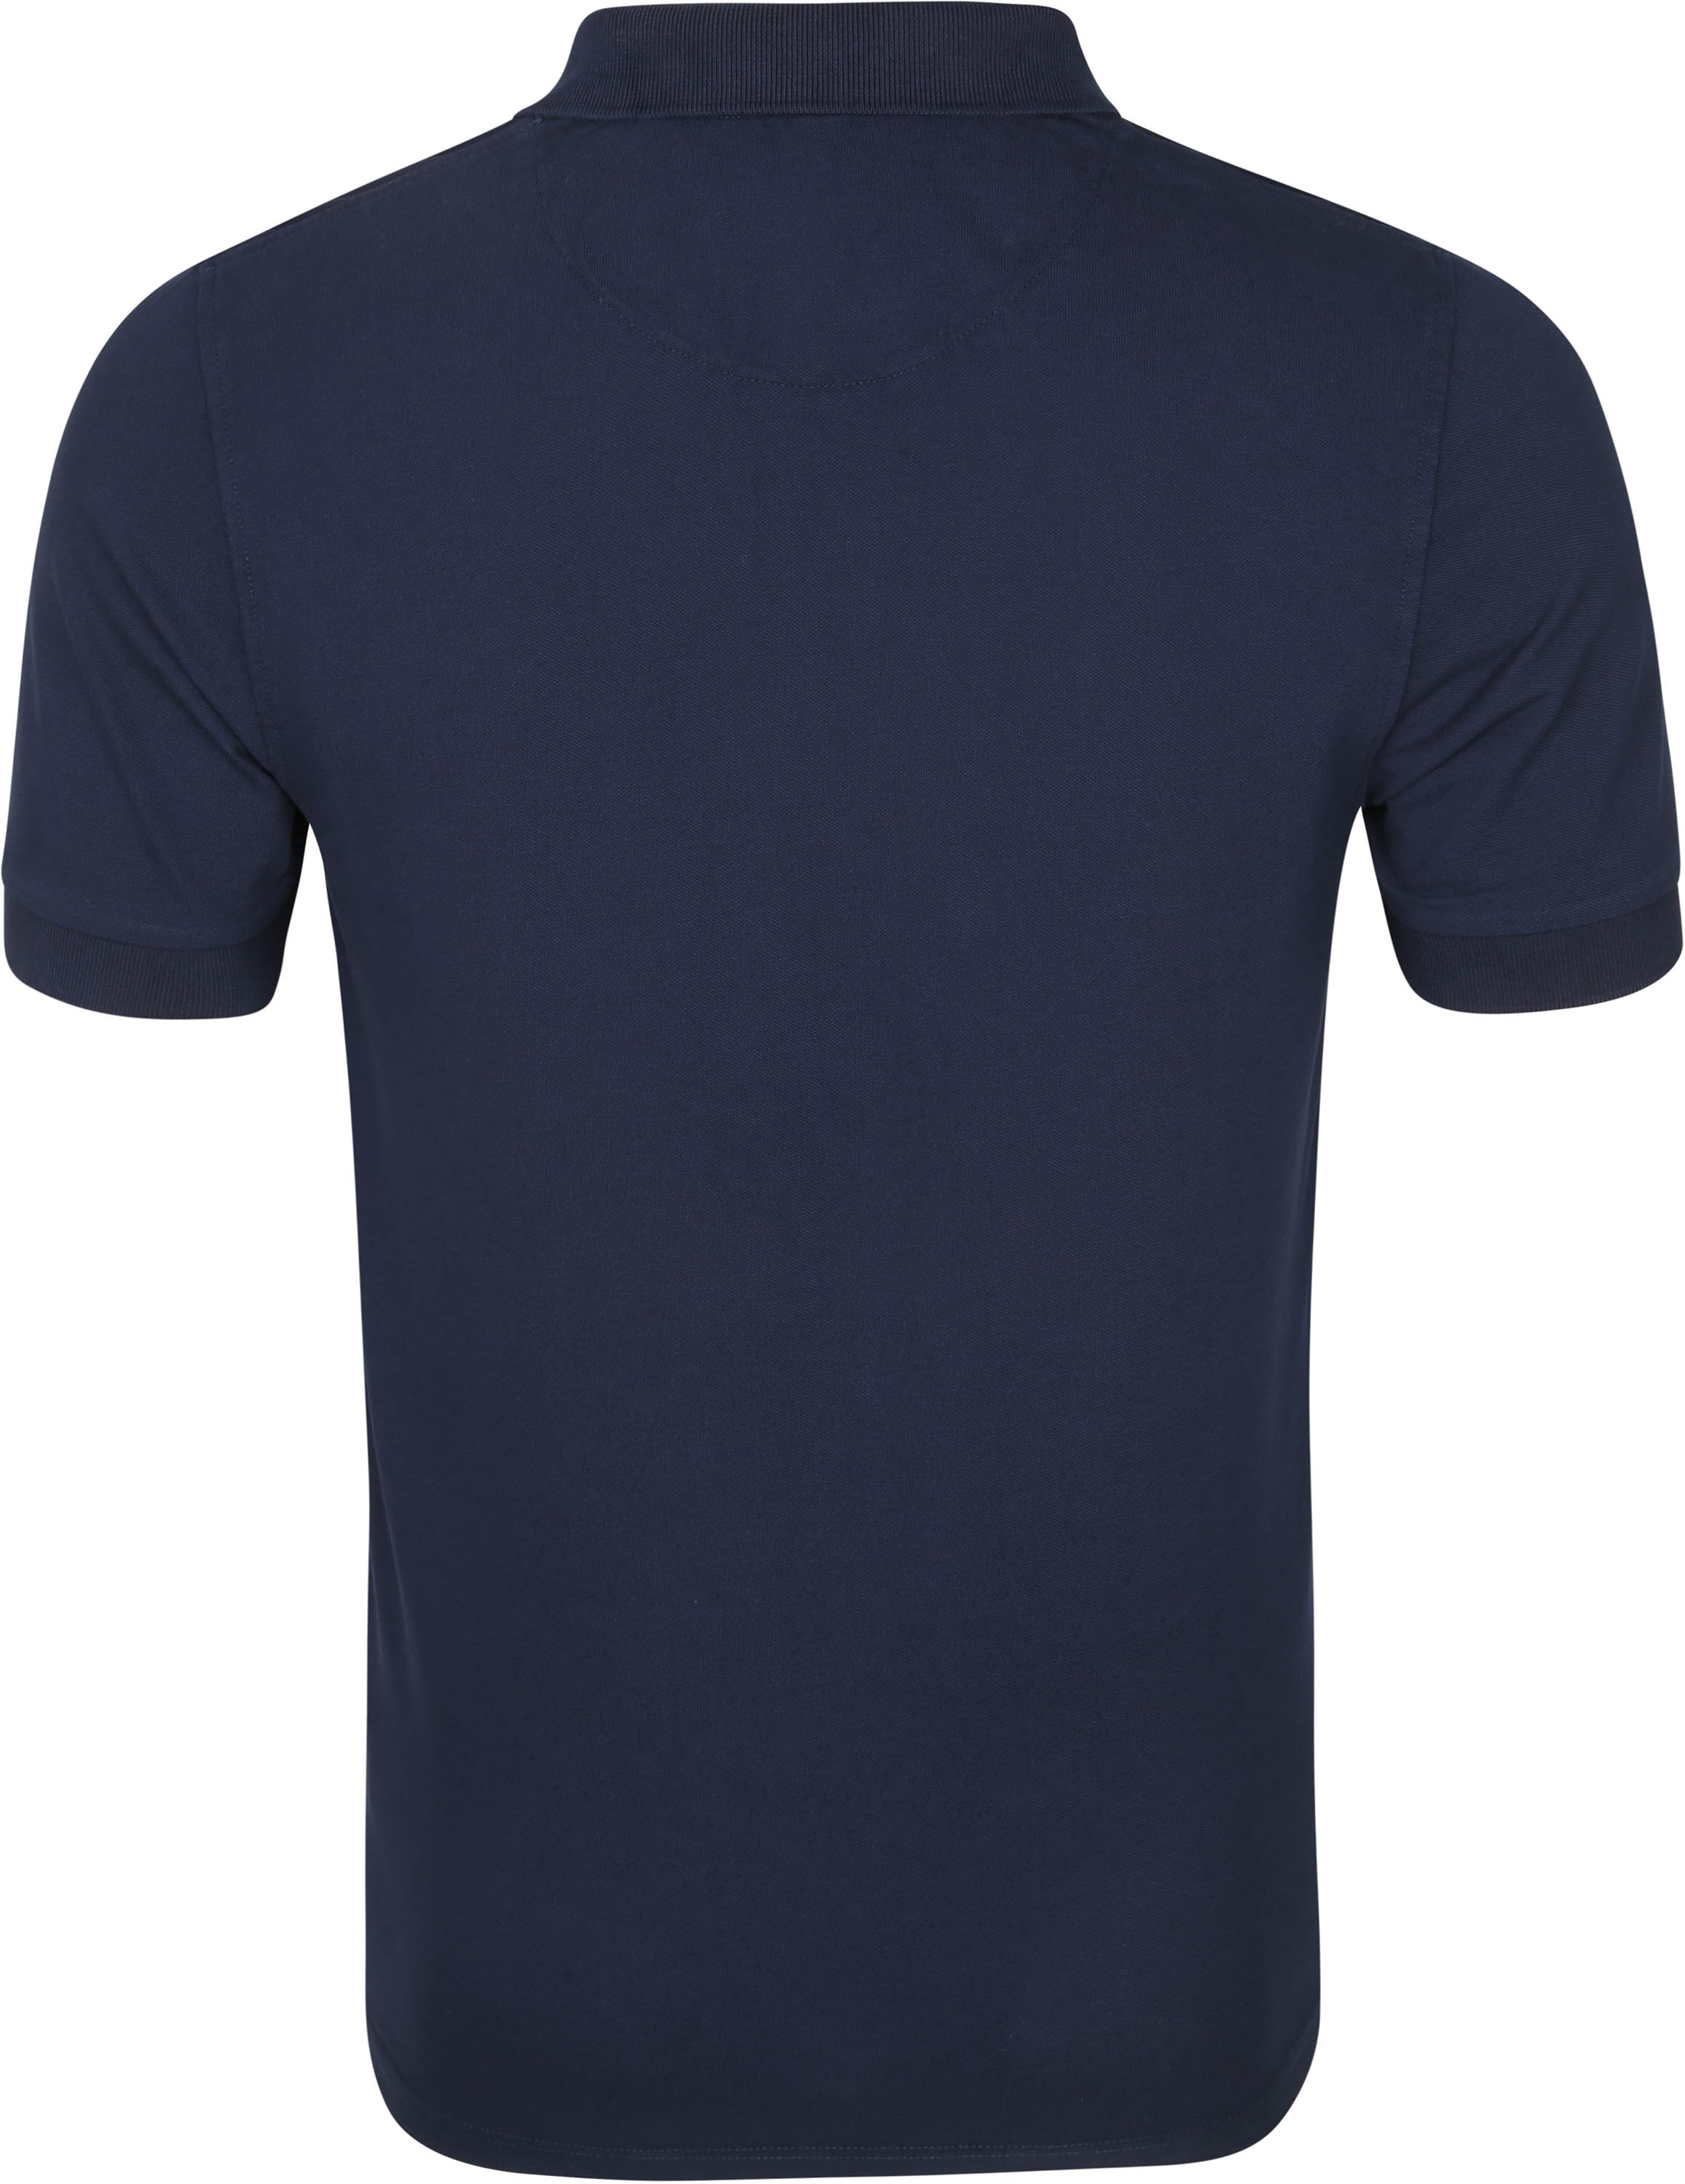 Sun68 Polo Cold Dye Donkerblauw